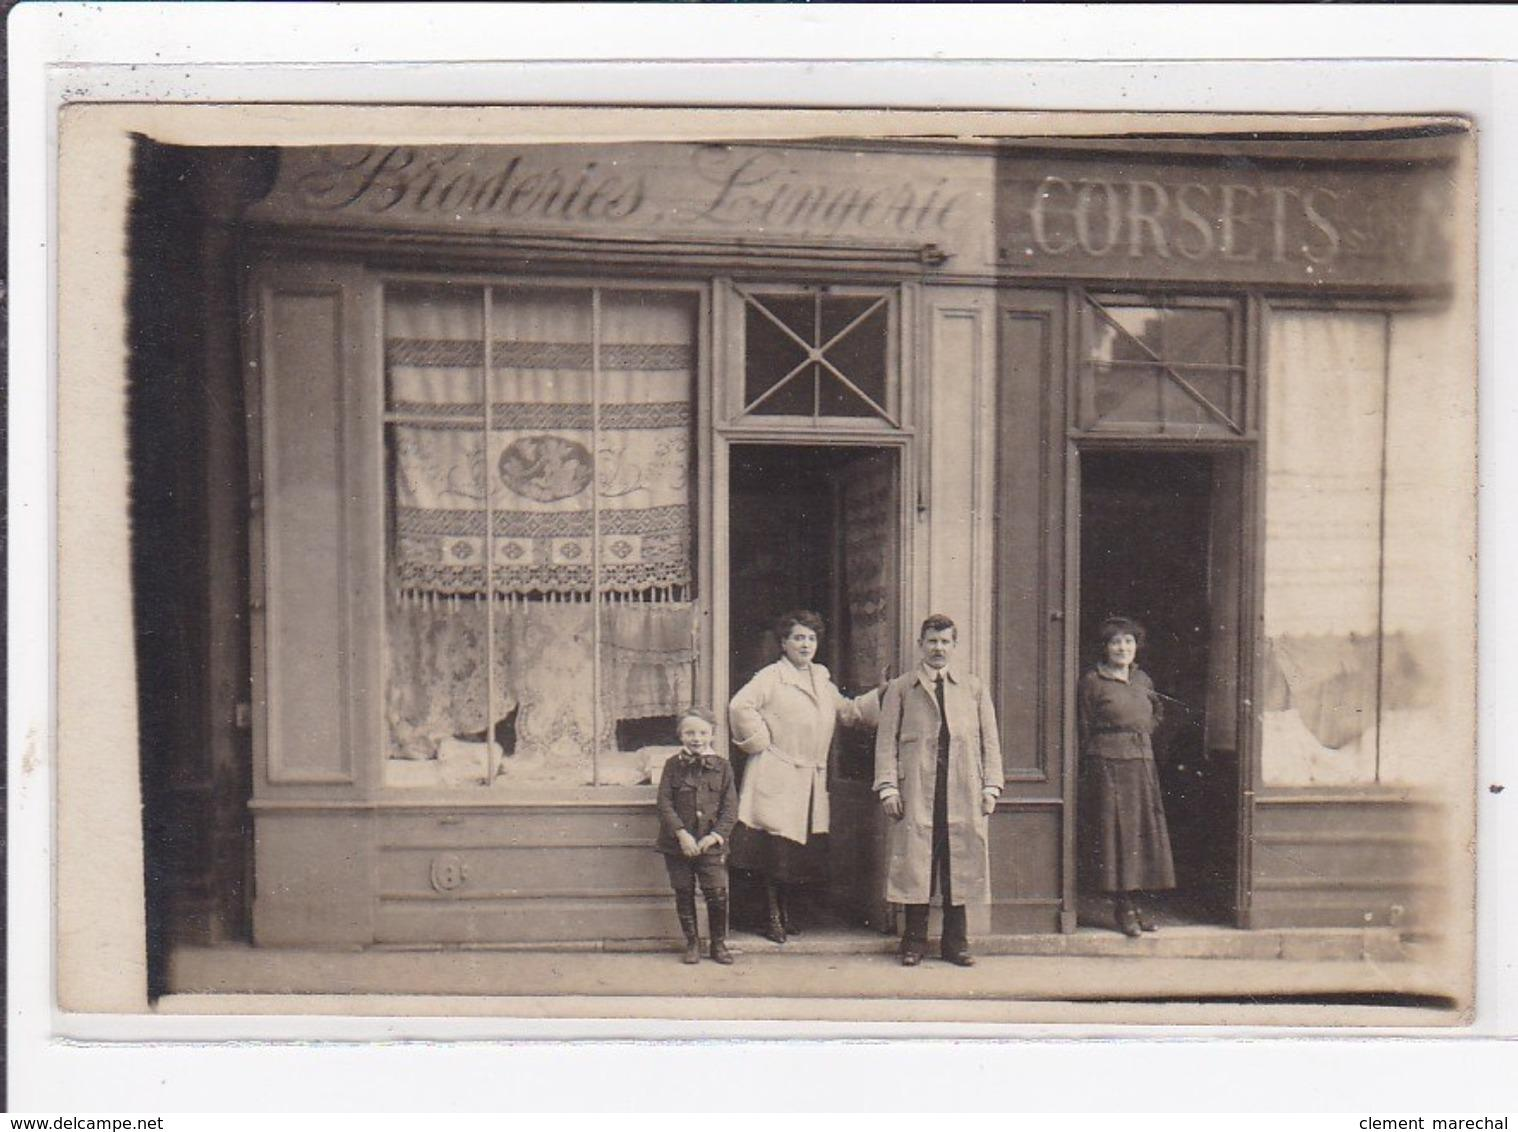 Carte postale ancienne PARIS : broderies lingerie corsets Carte postale ancienne PARIS : broderies lingerie corsets